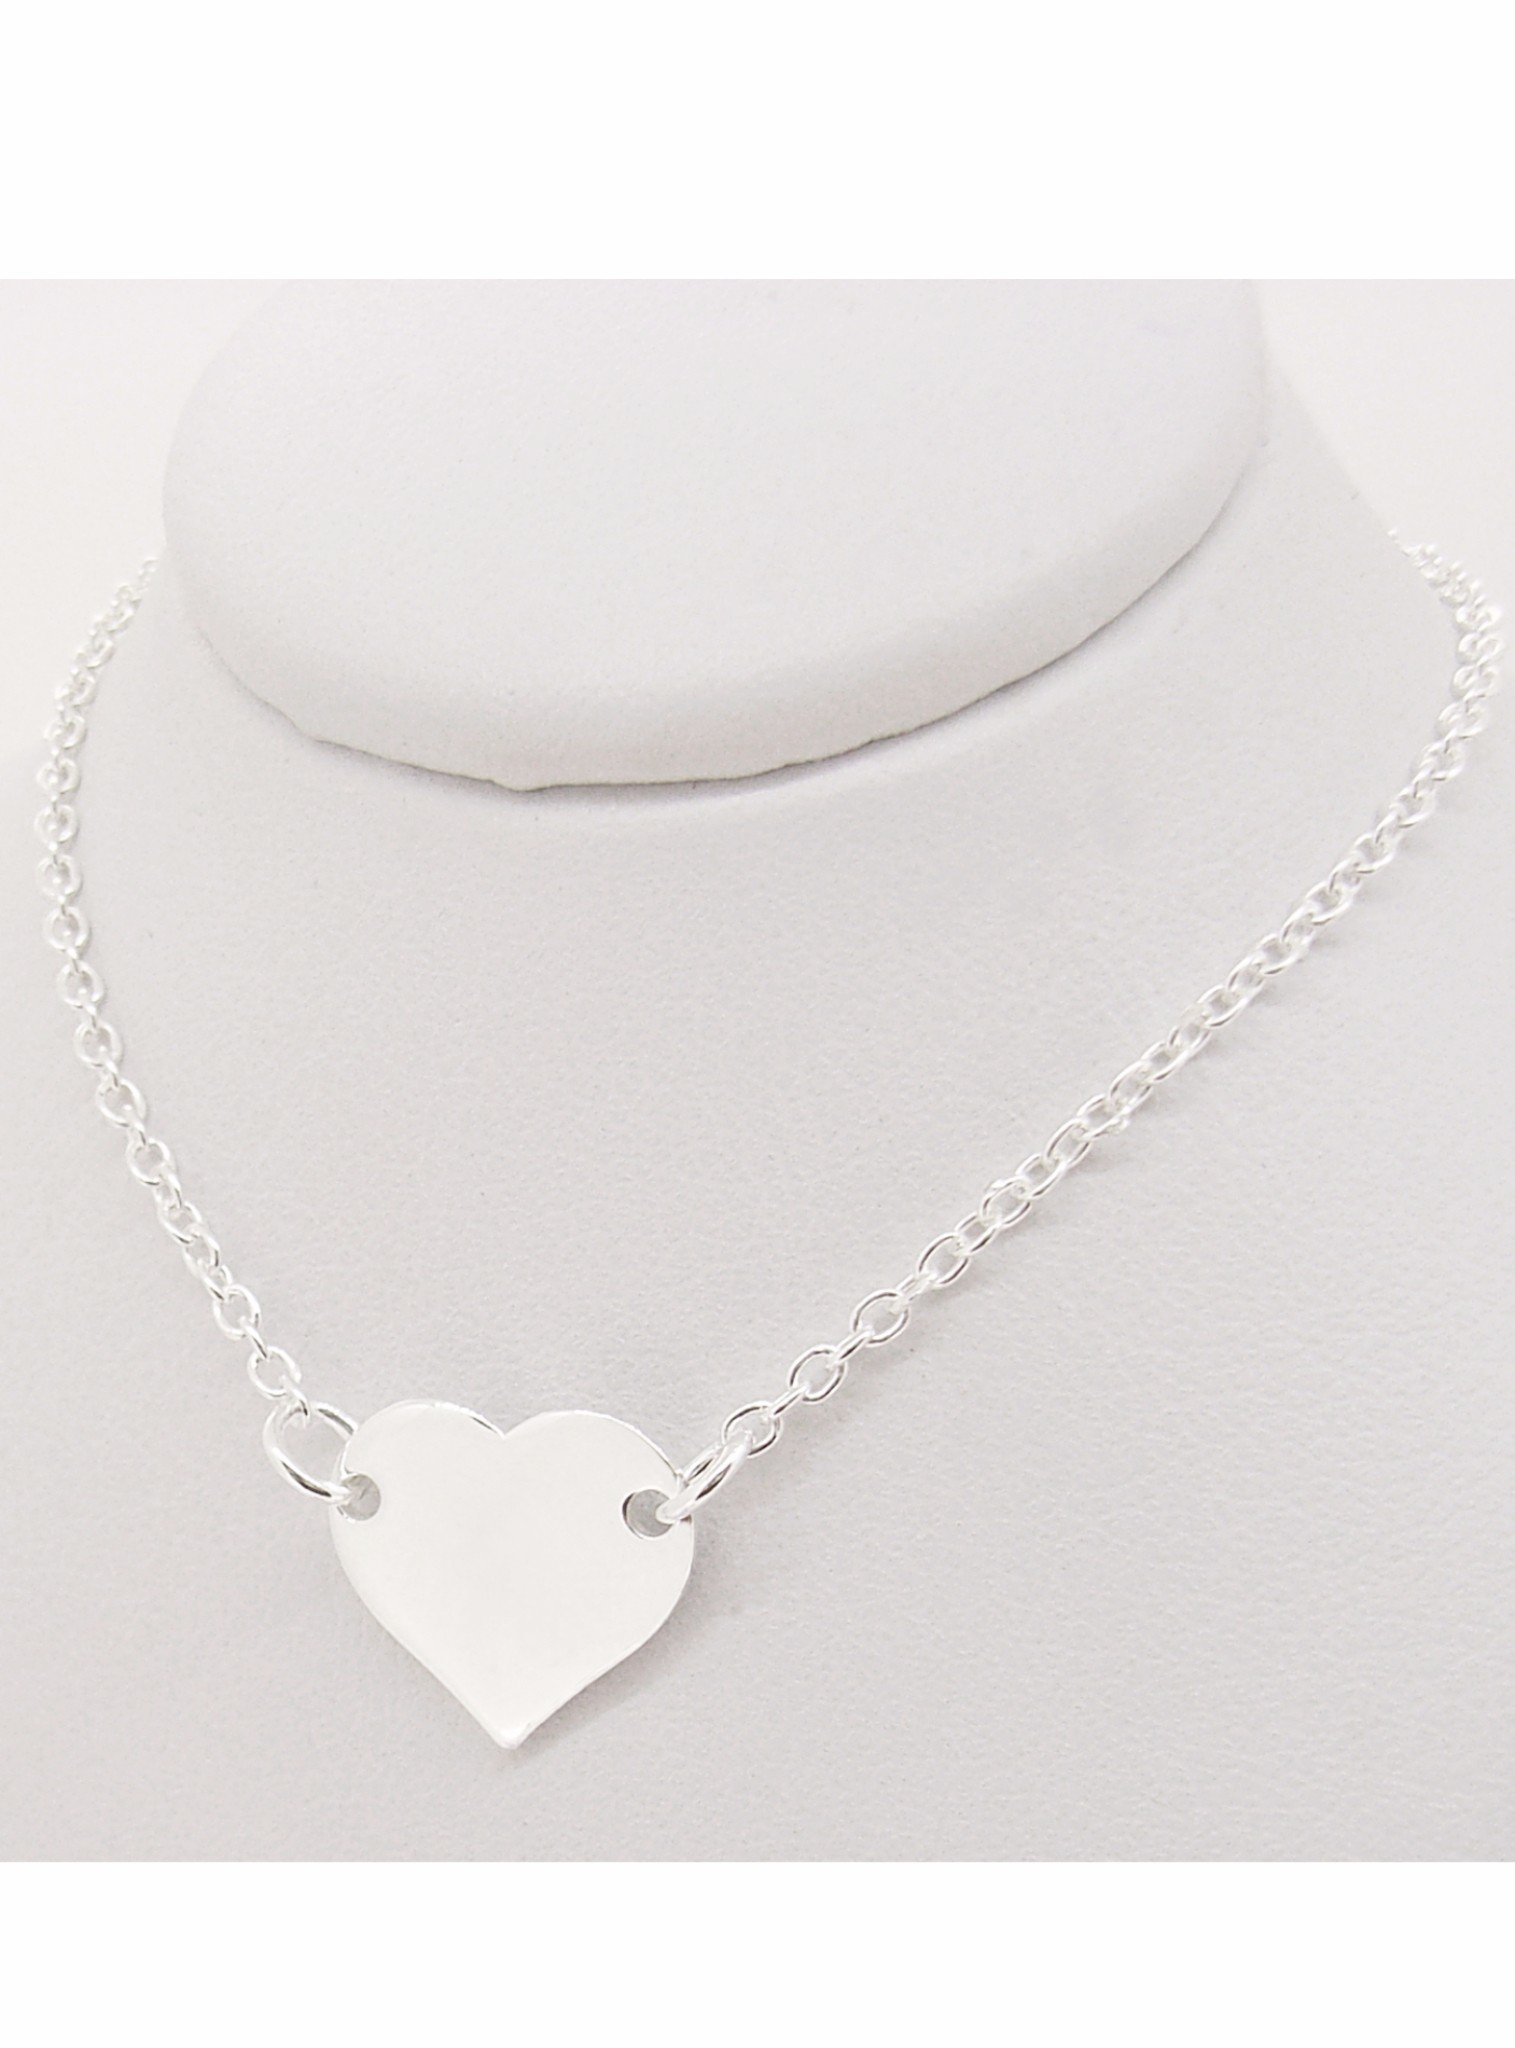 Michaela Love Heart Tag Necklace in Silver